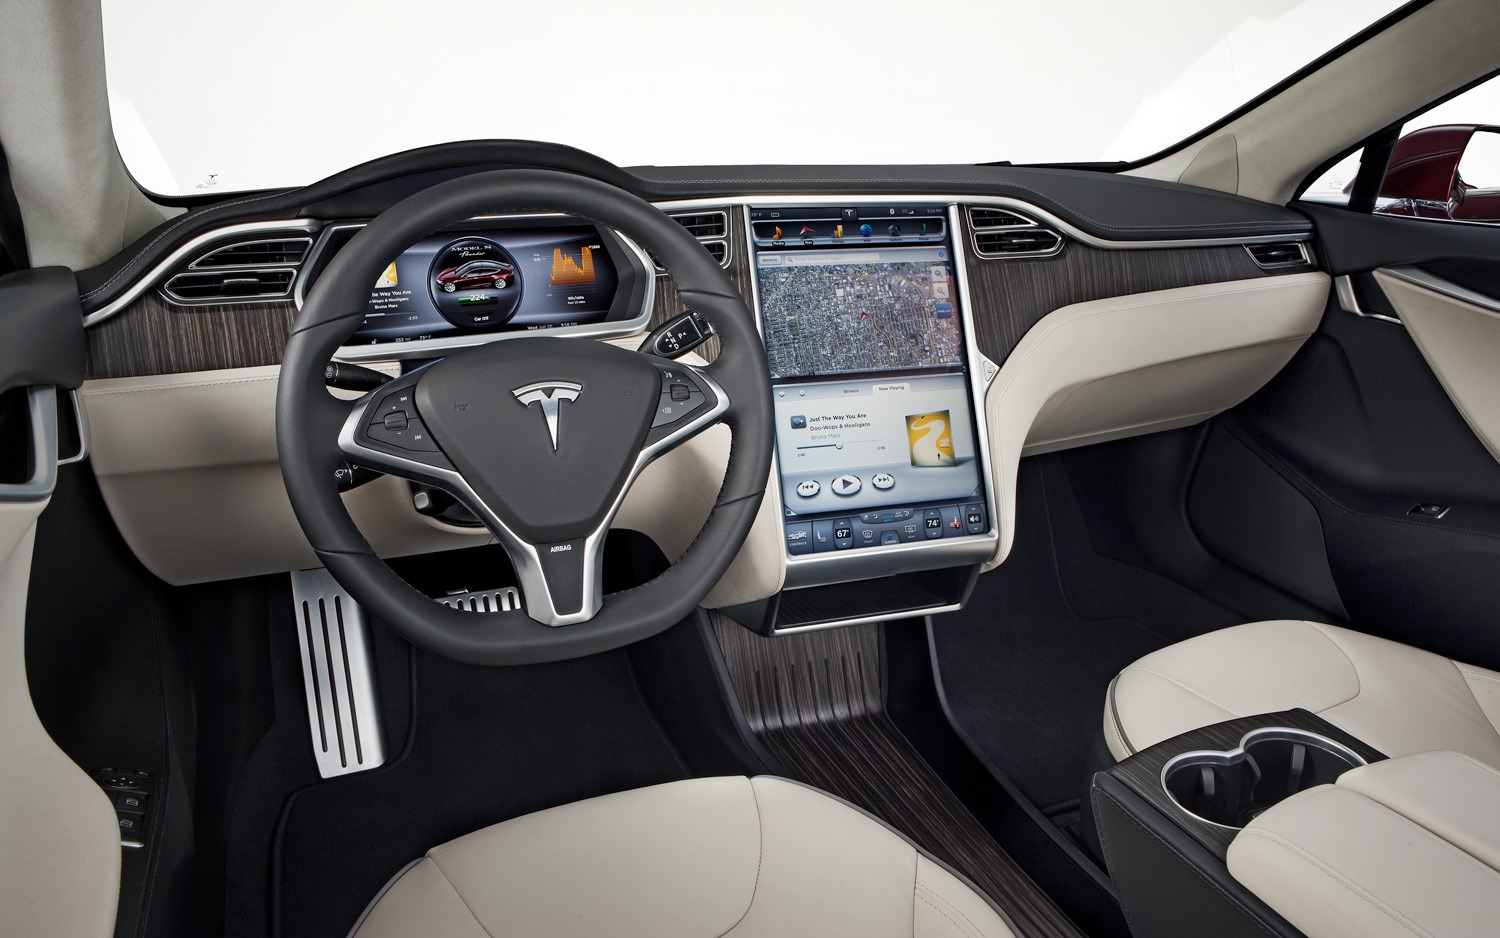 Tesla vehicles might get hacked easier than thought